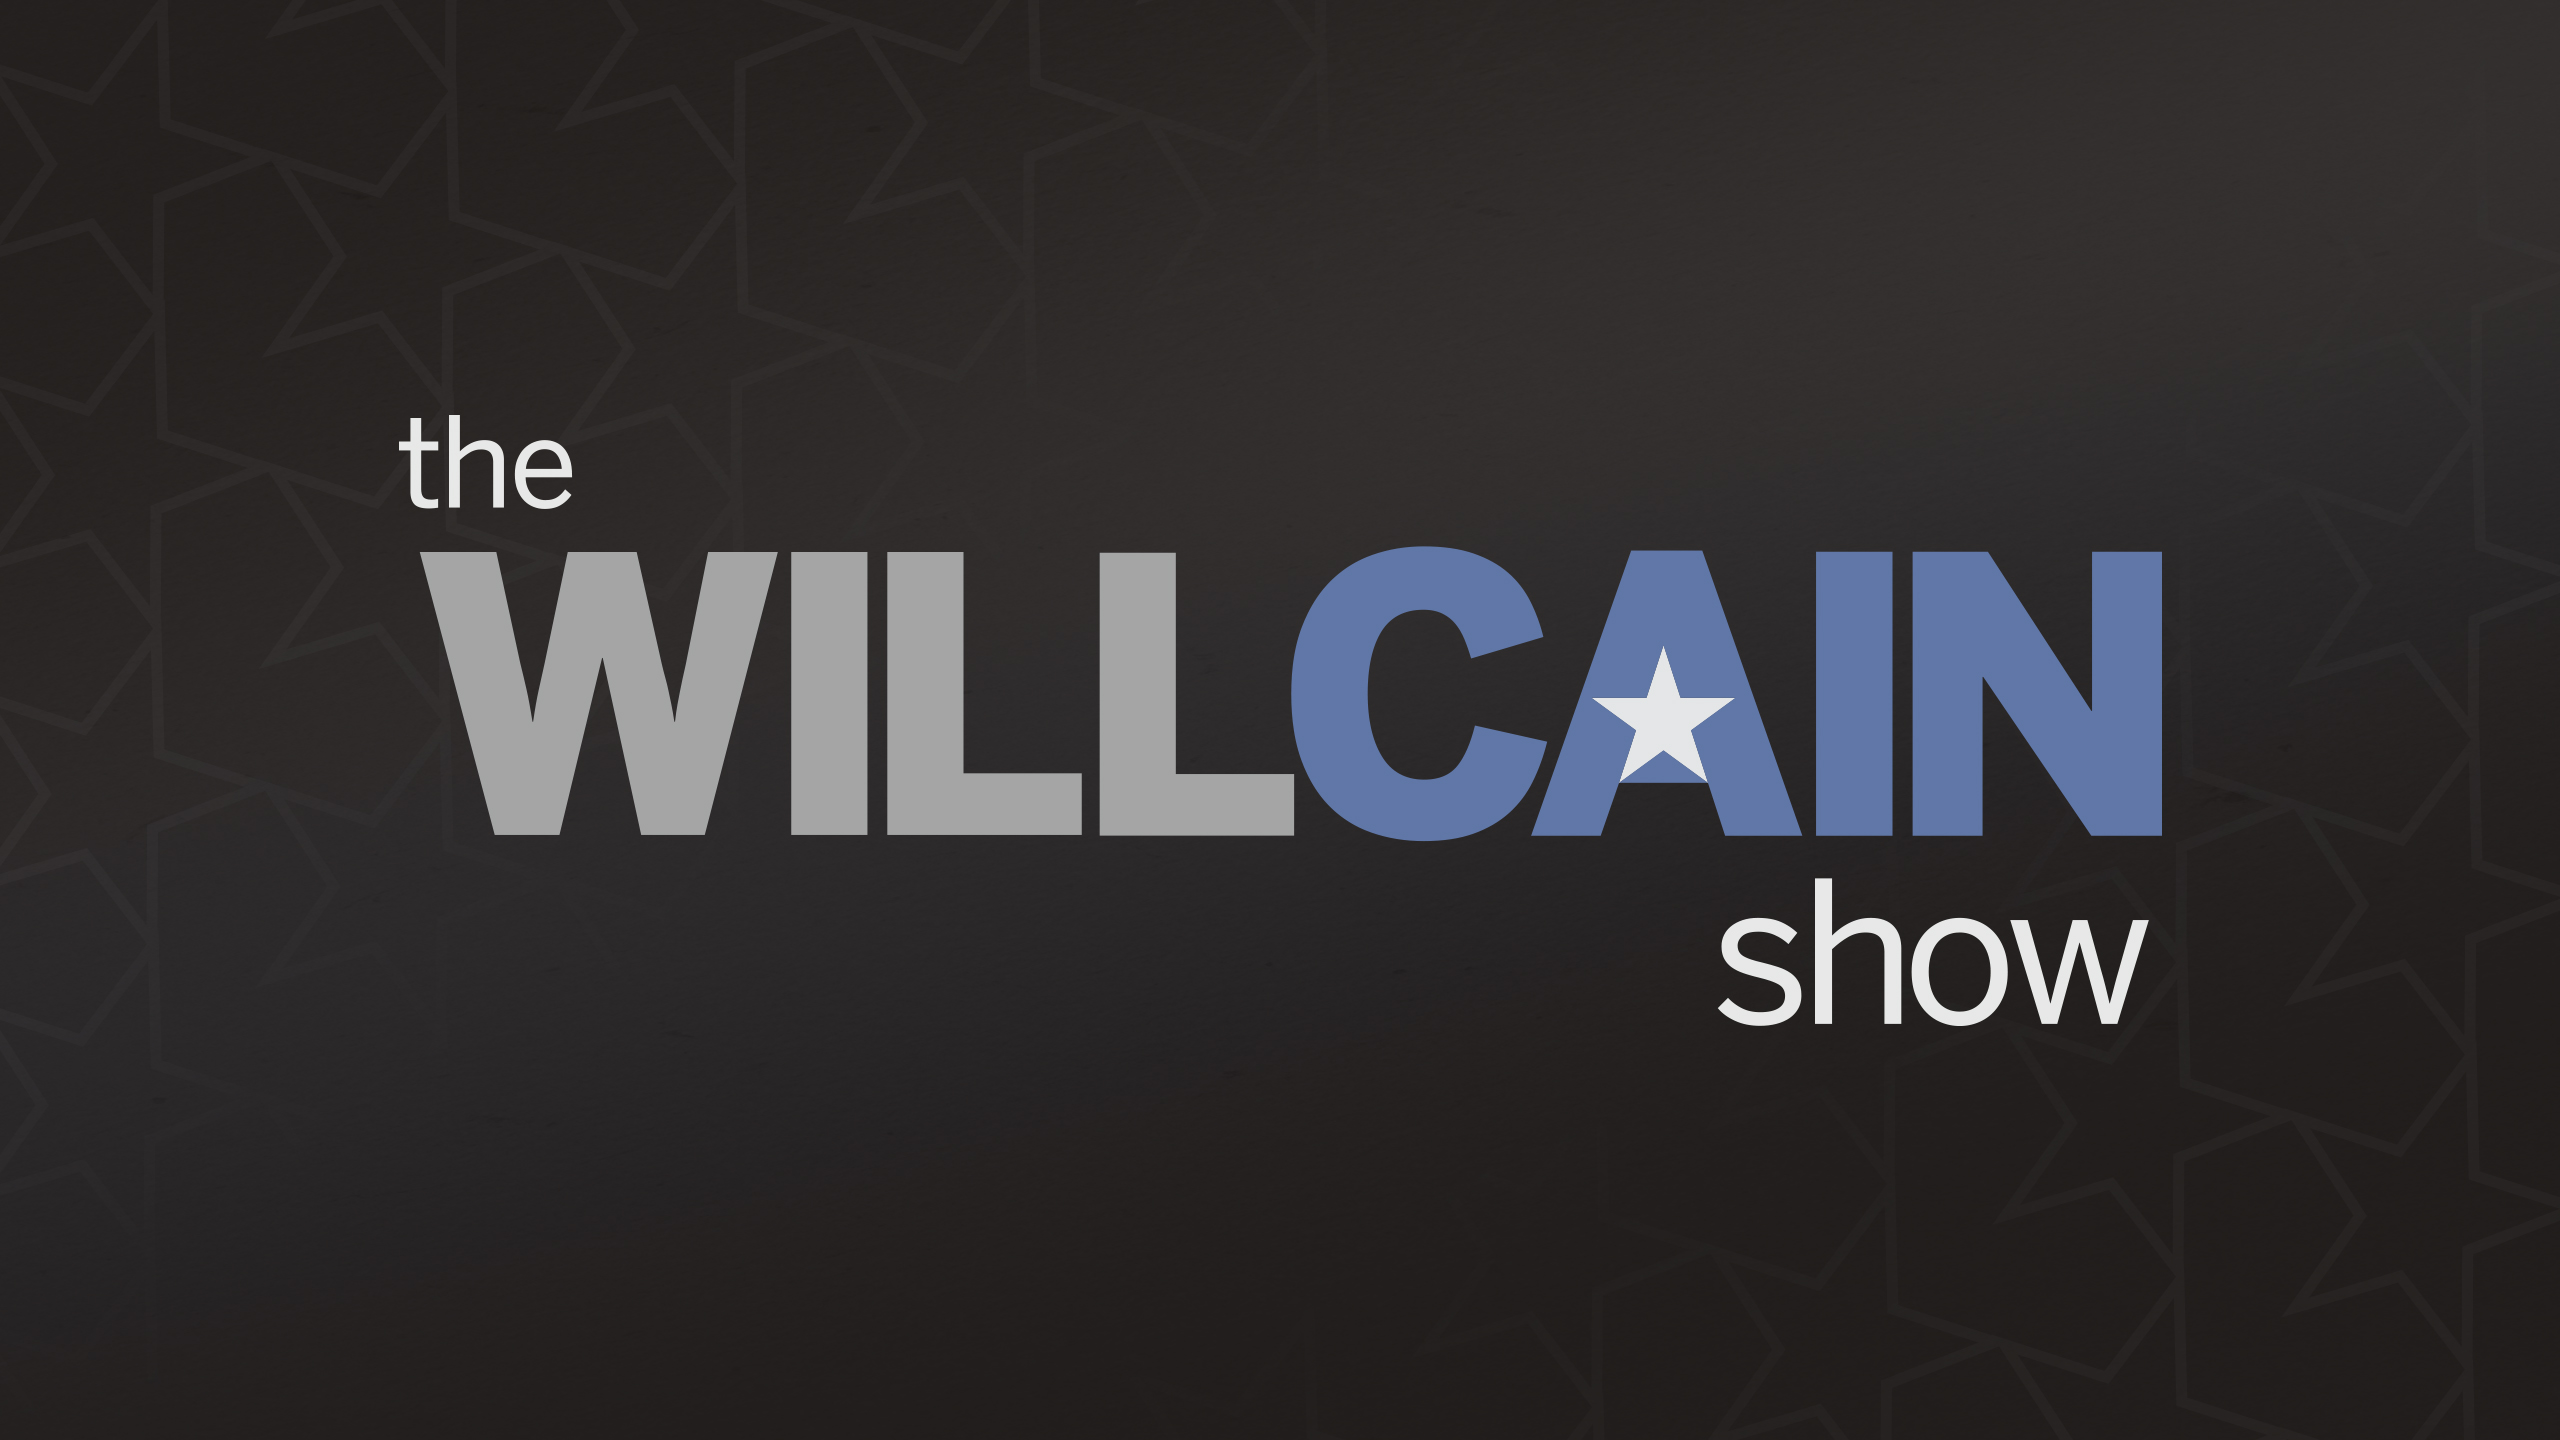 Mon, 2/18 - The Will Cain Show Presented by Progressive